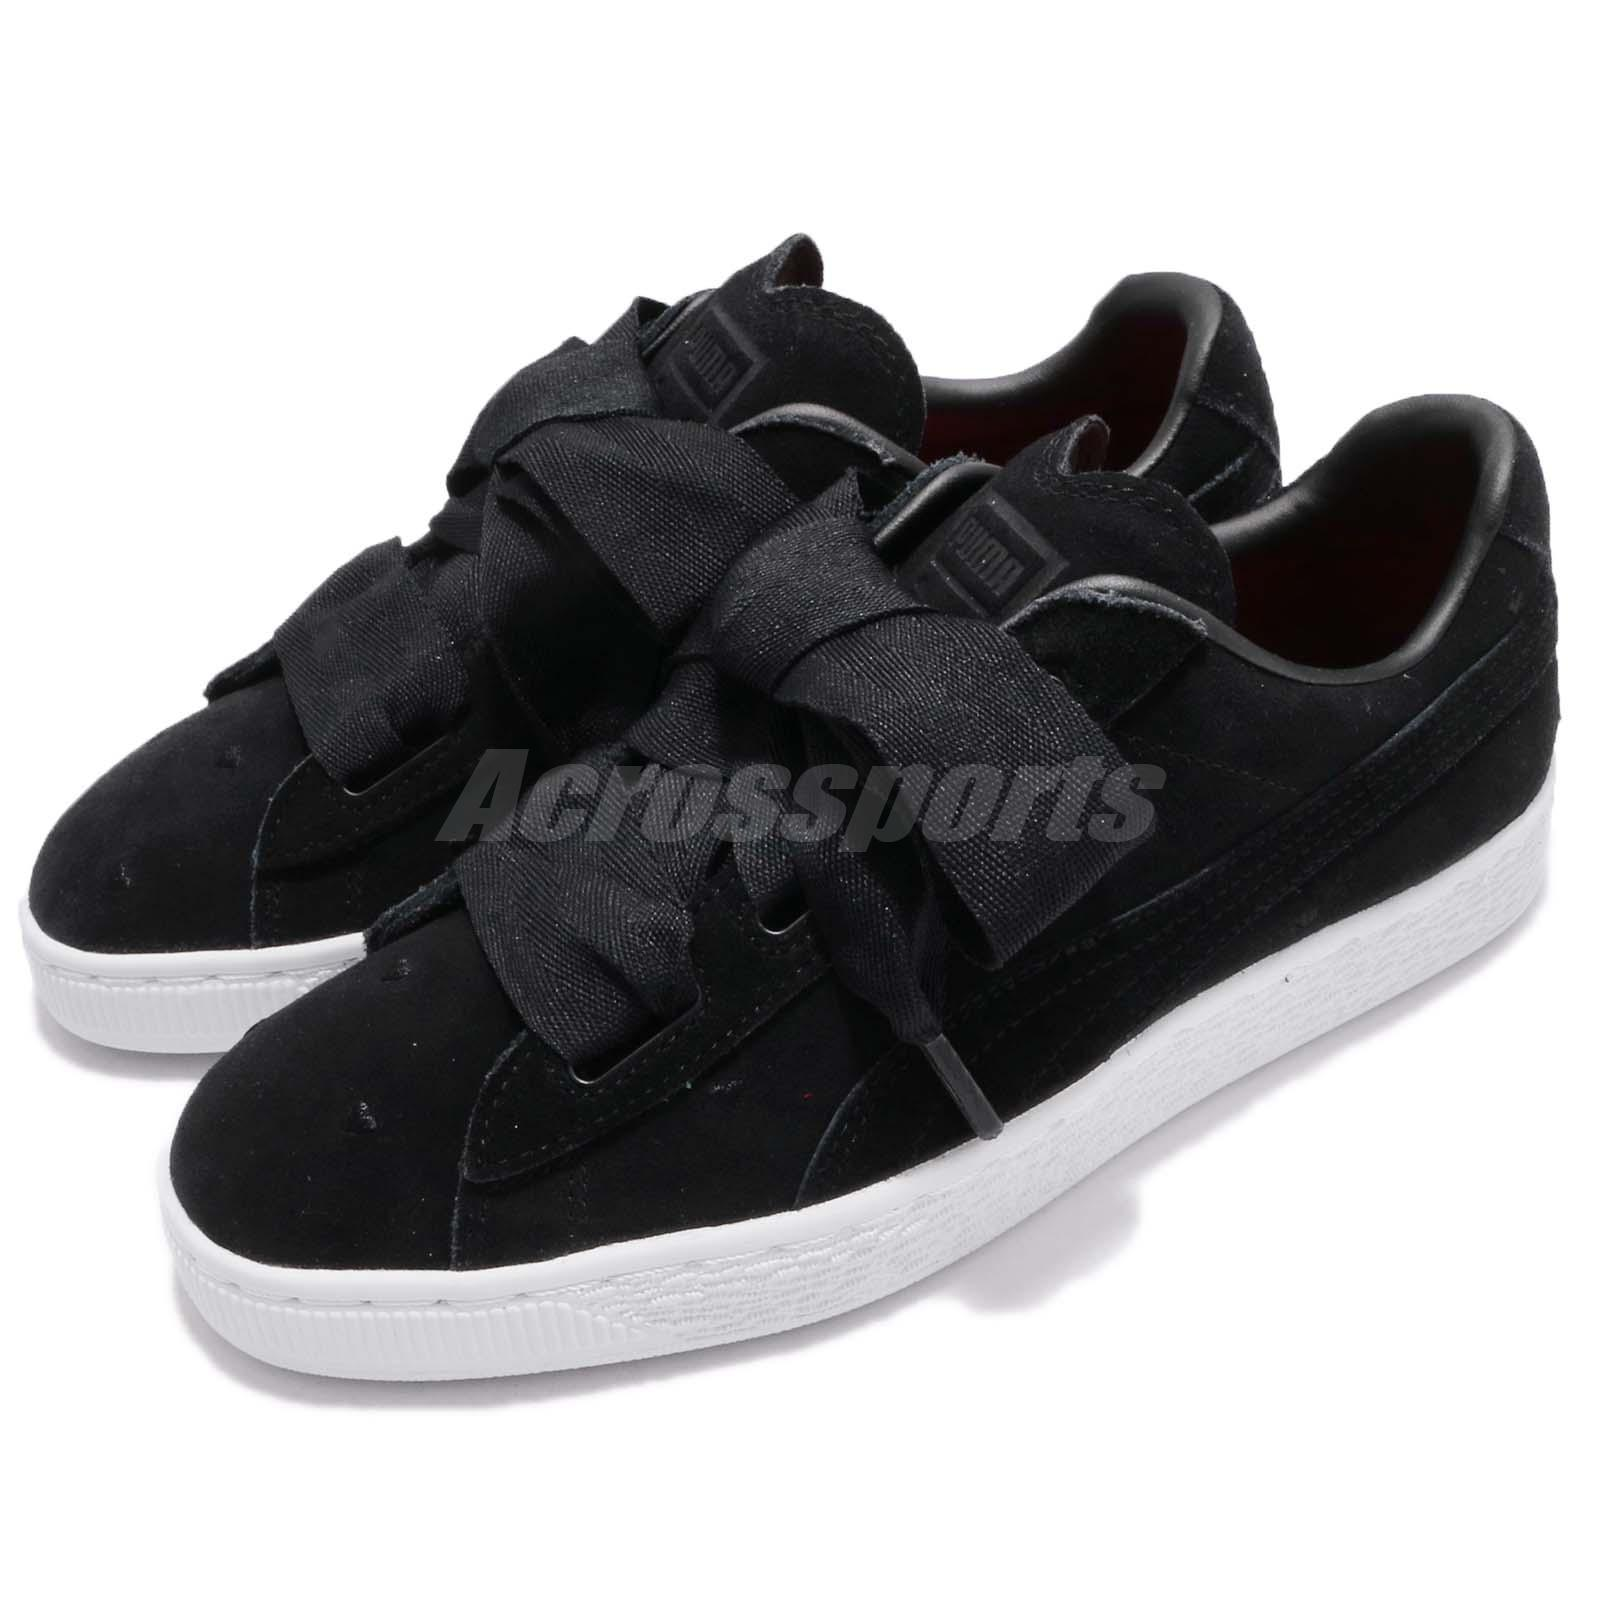 489fb4efe3f9a Details about Puma Suede Heart Valentine JR Black White Kids Junior Youth  Shoes 365135-02